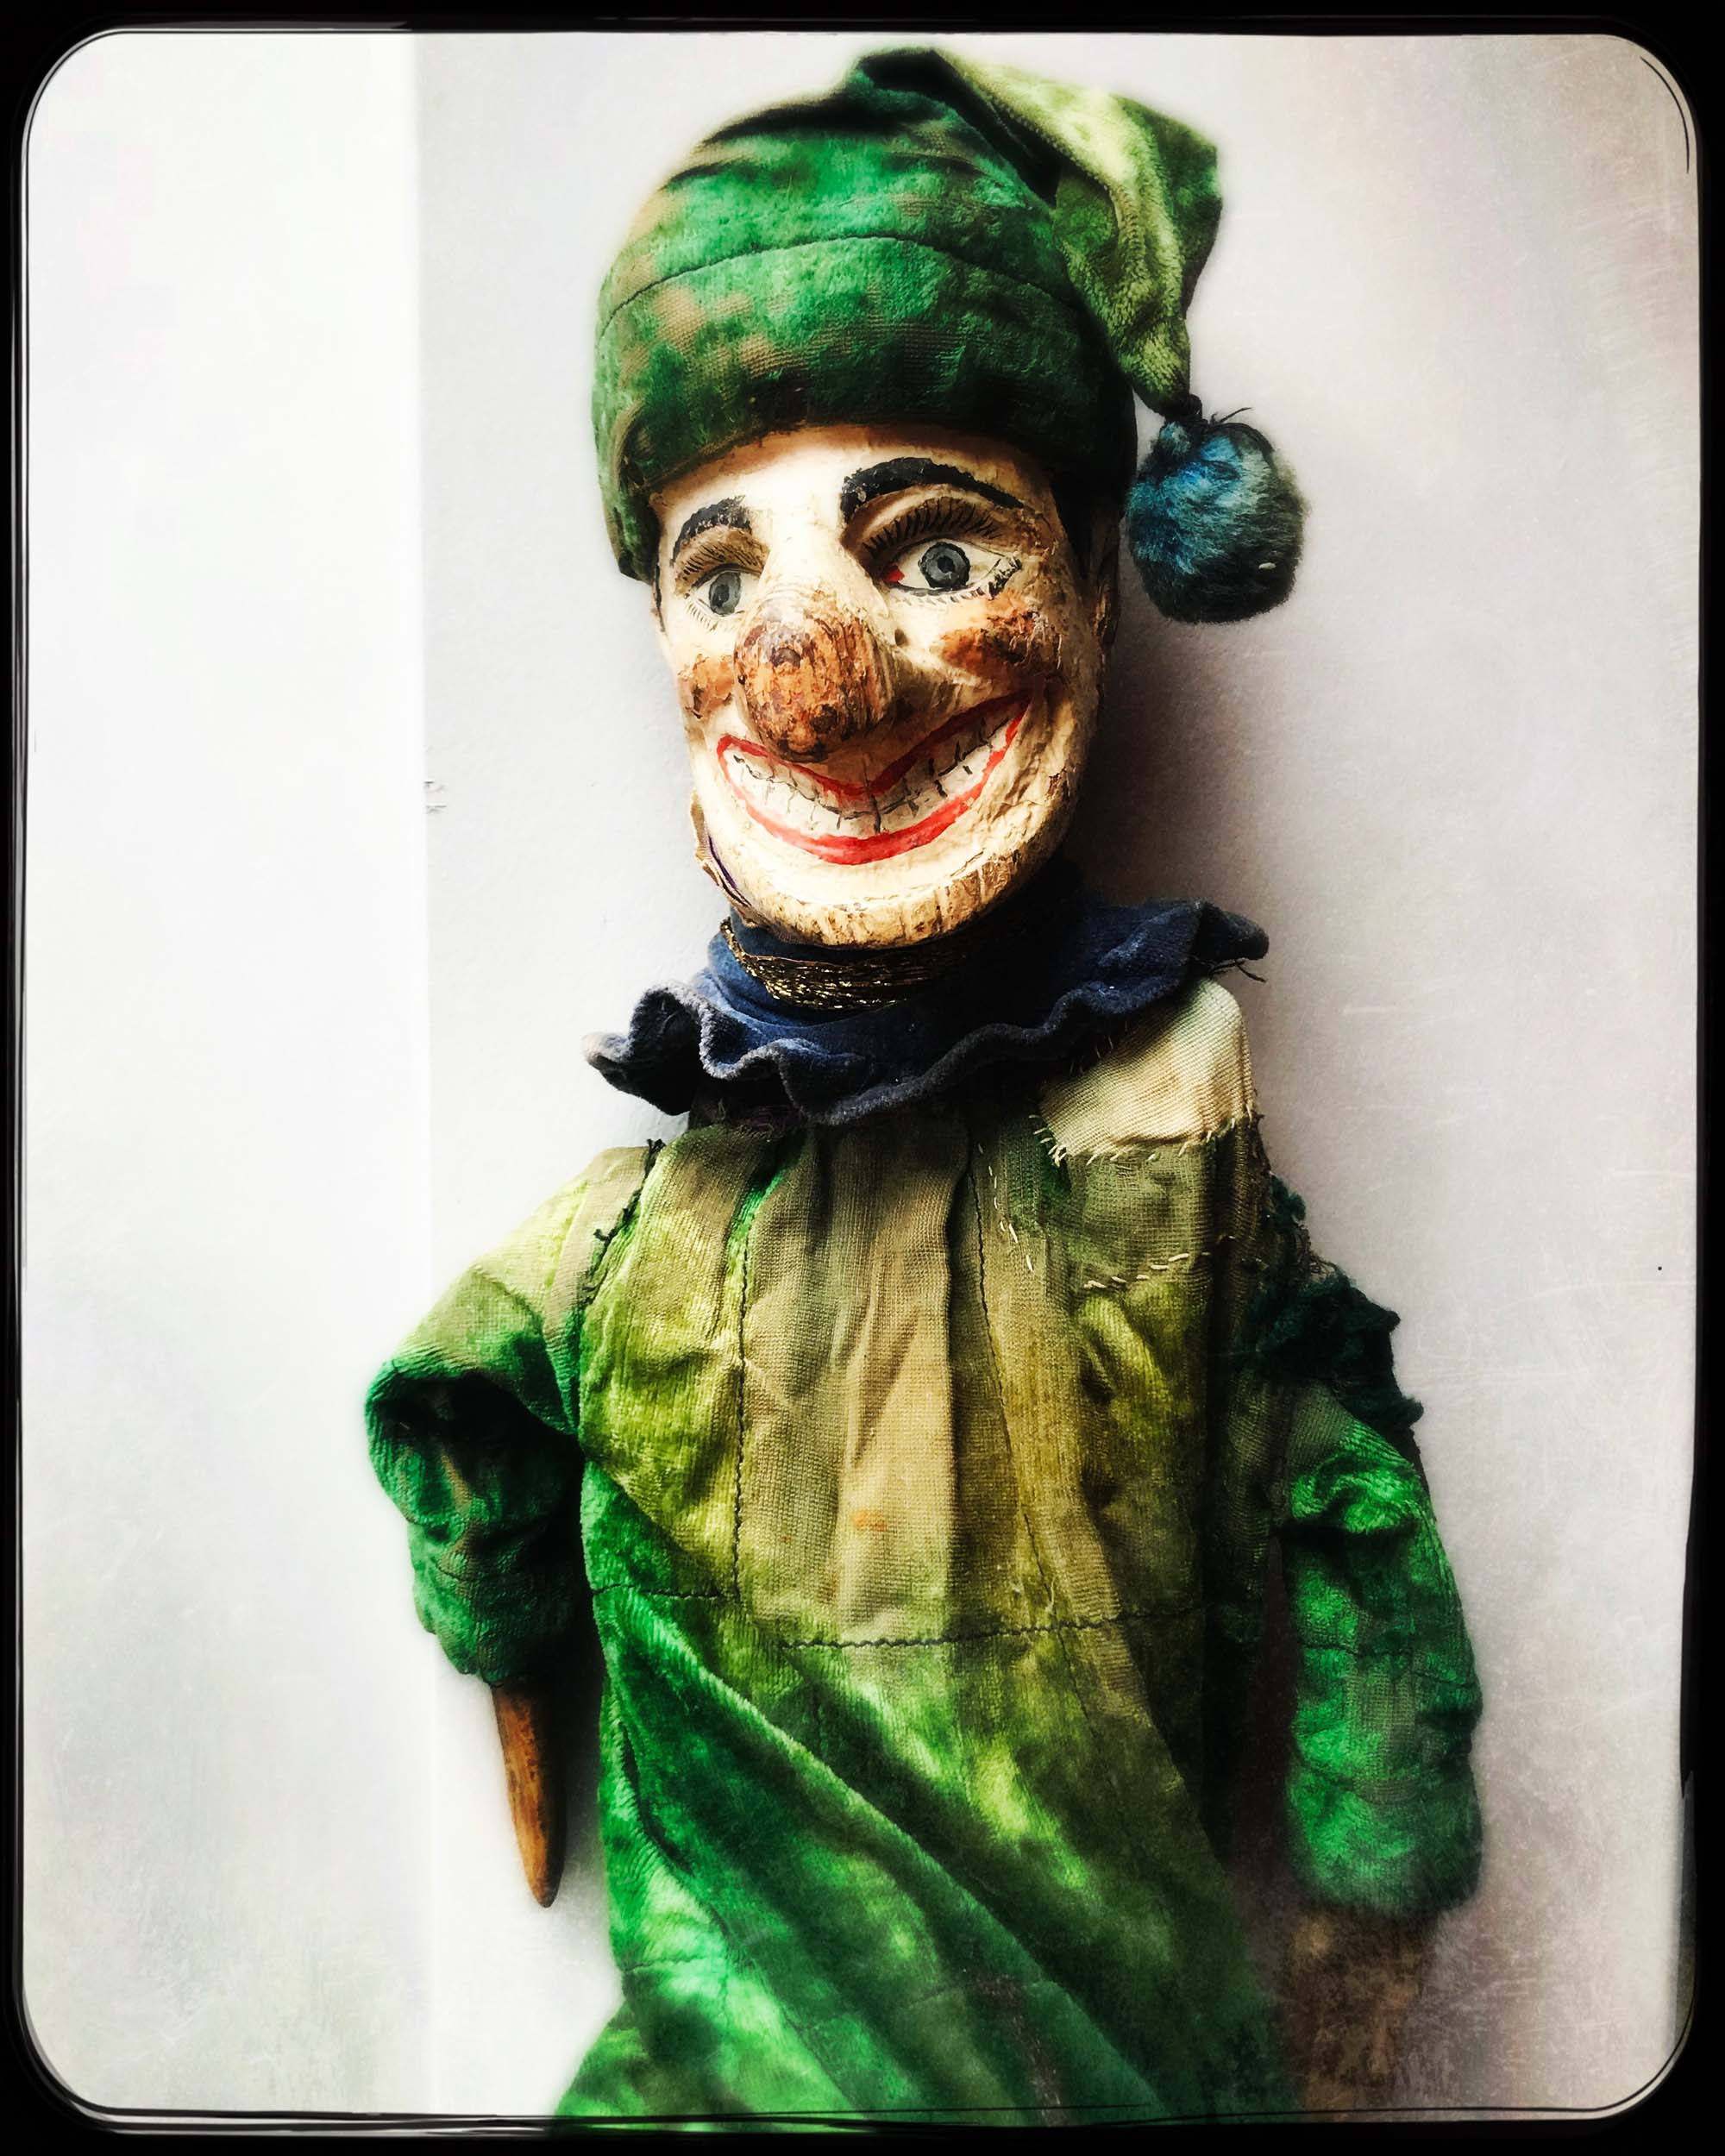 a photo of a Mr Punch character dressed in green